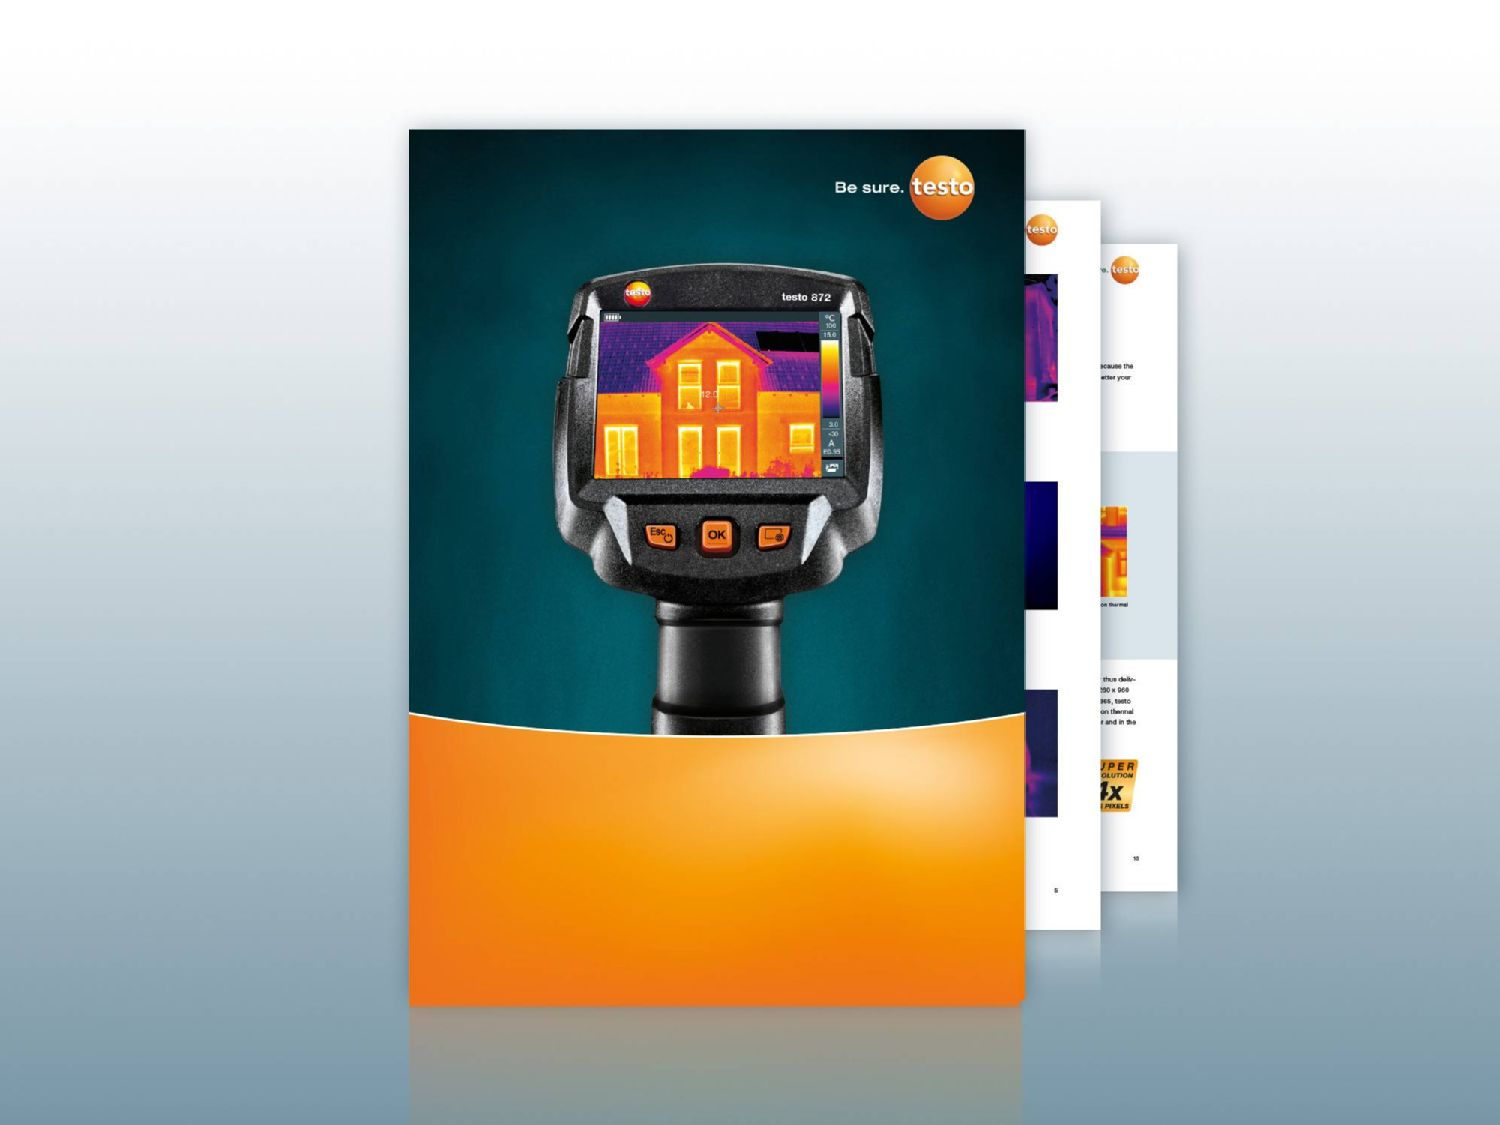 Thermal imager download